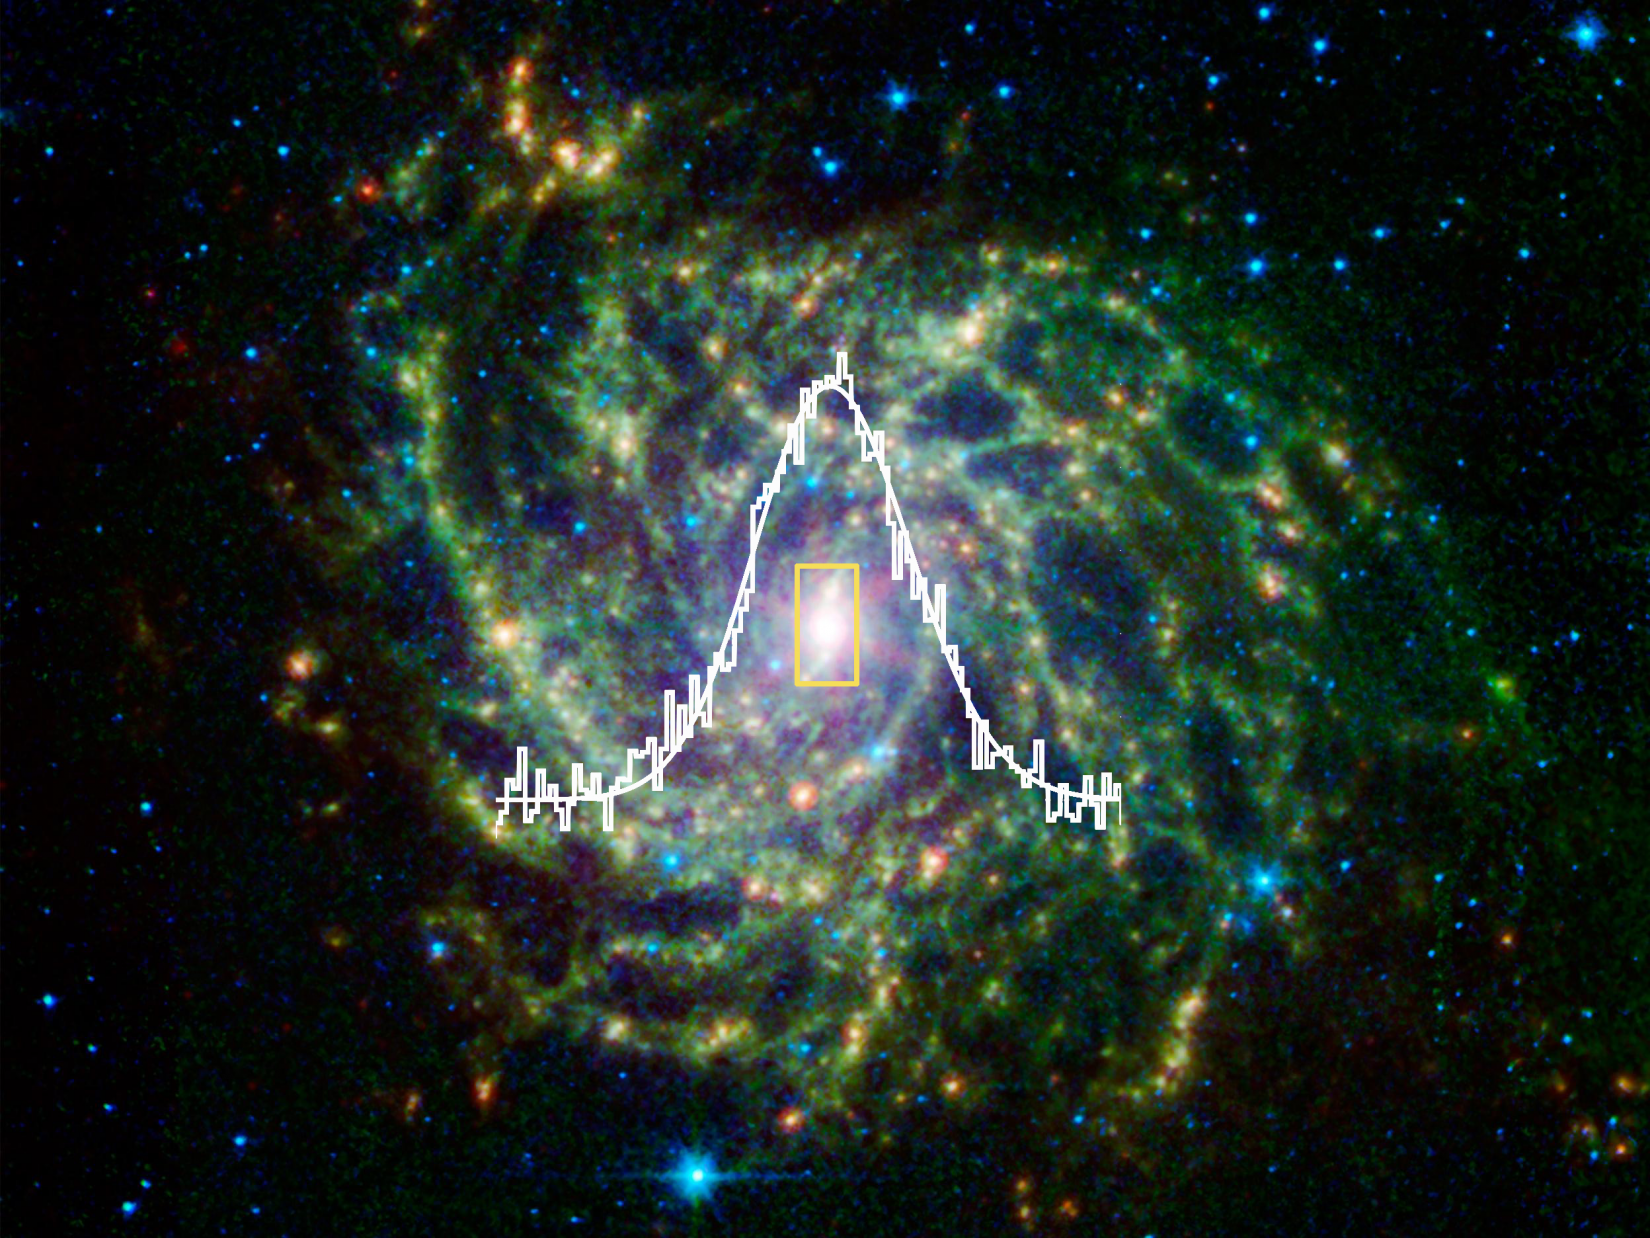 A near- and mid-infrared image of galaxy IC 342 from the Spitzer Space Telescope